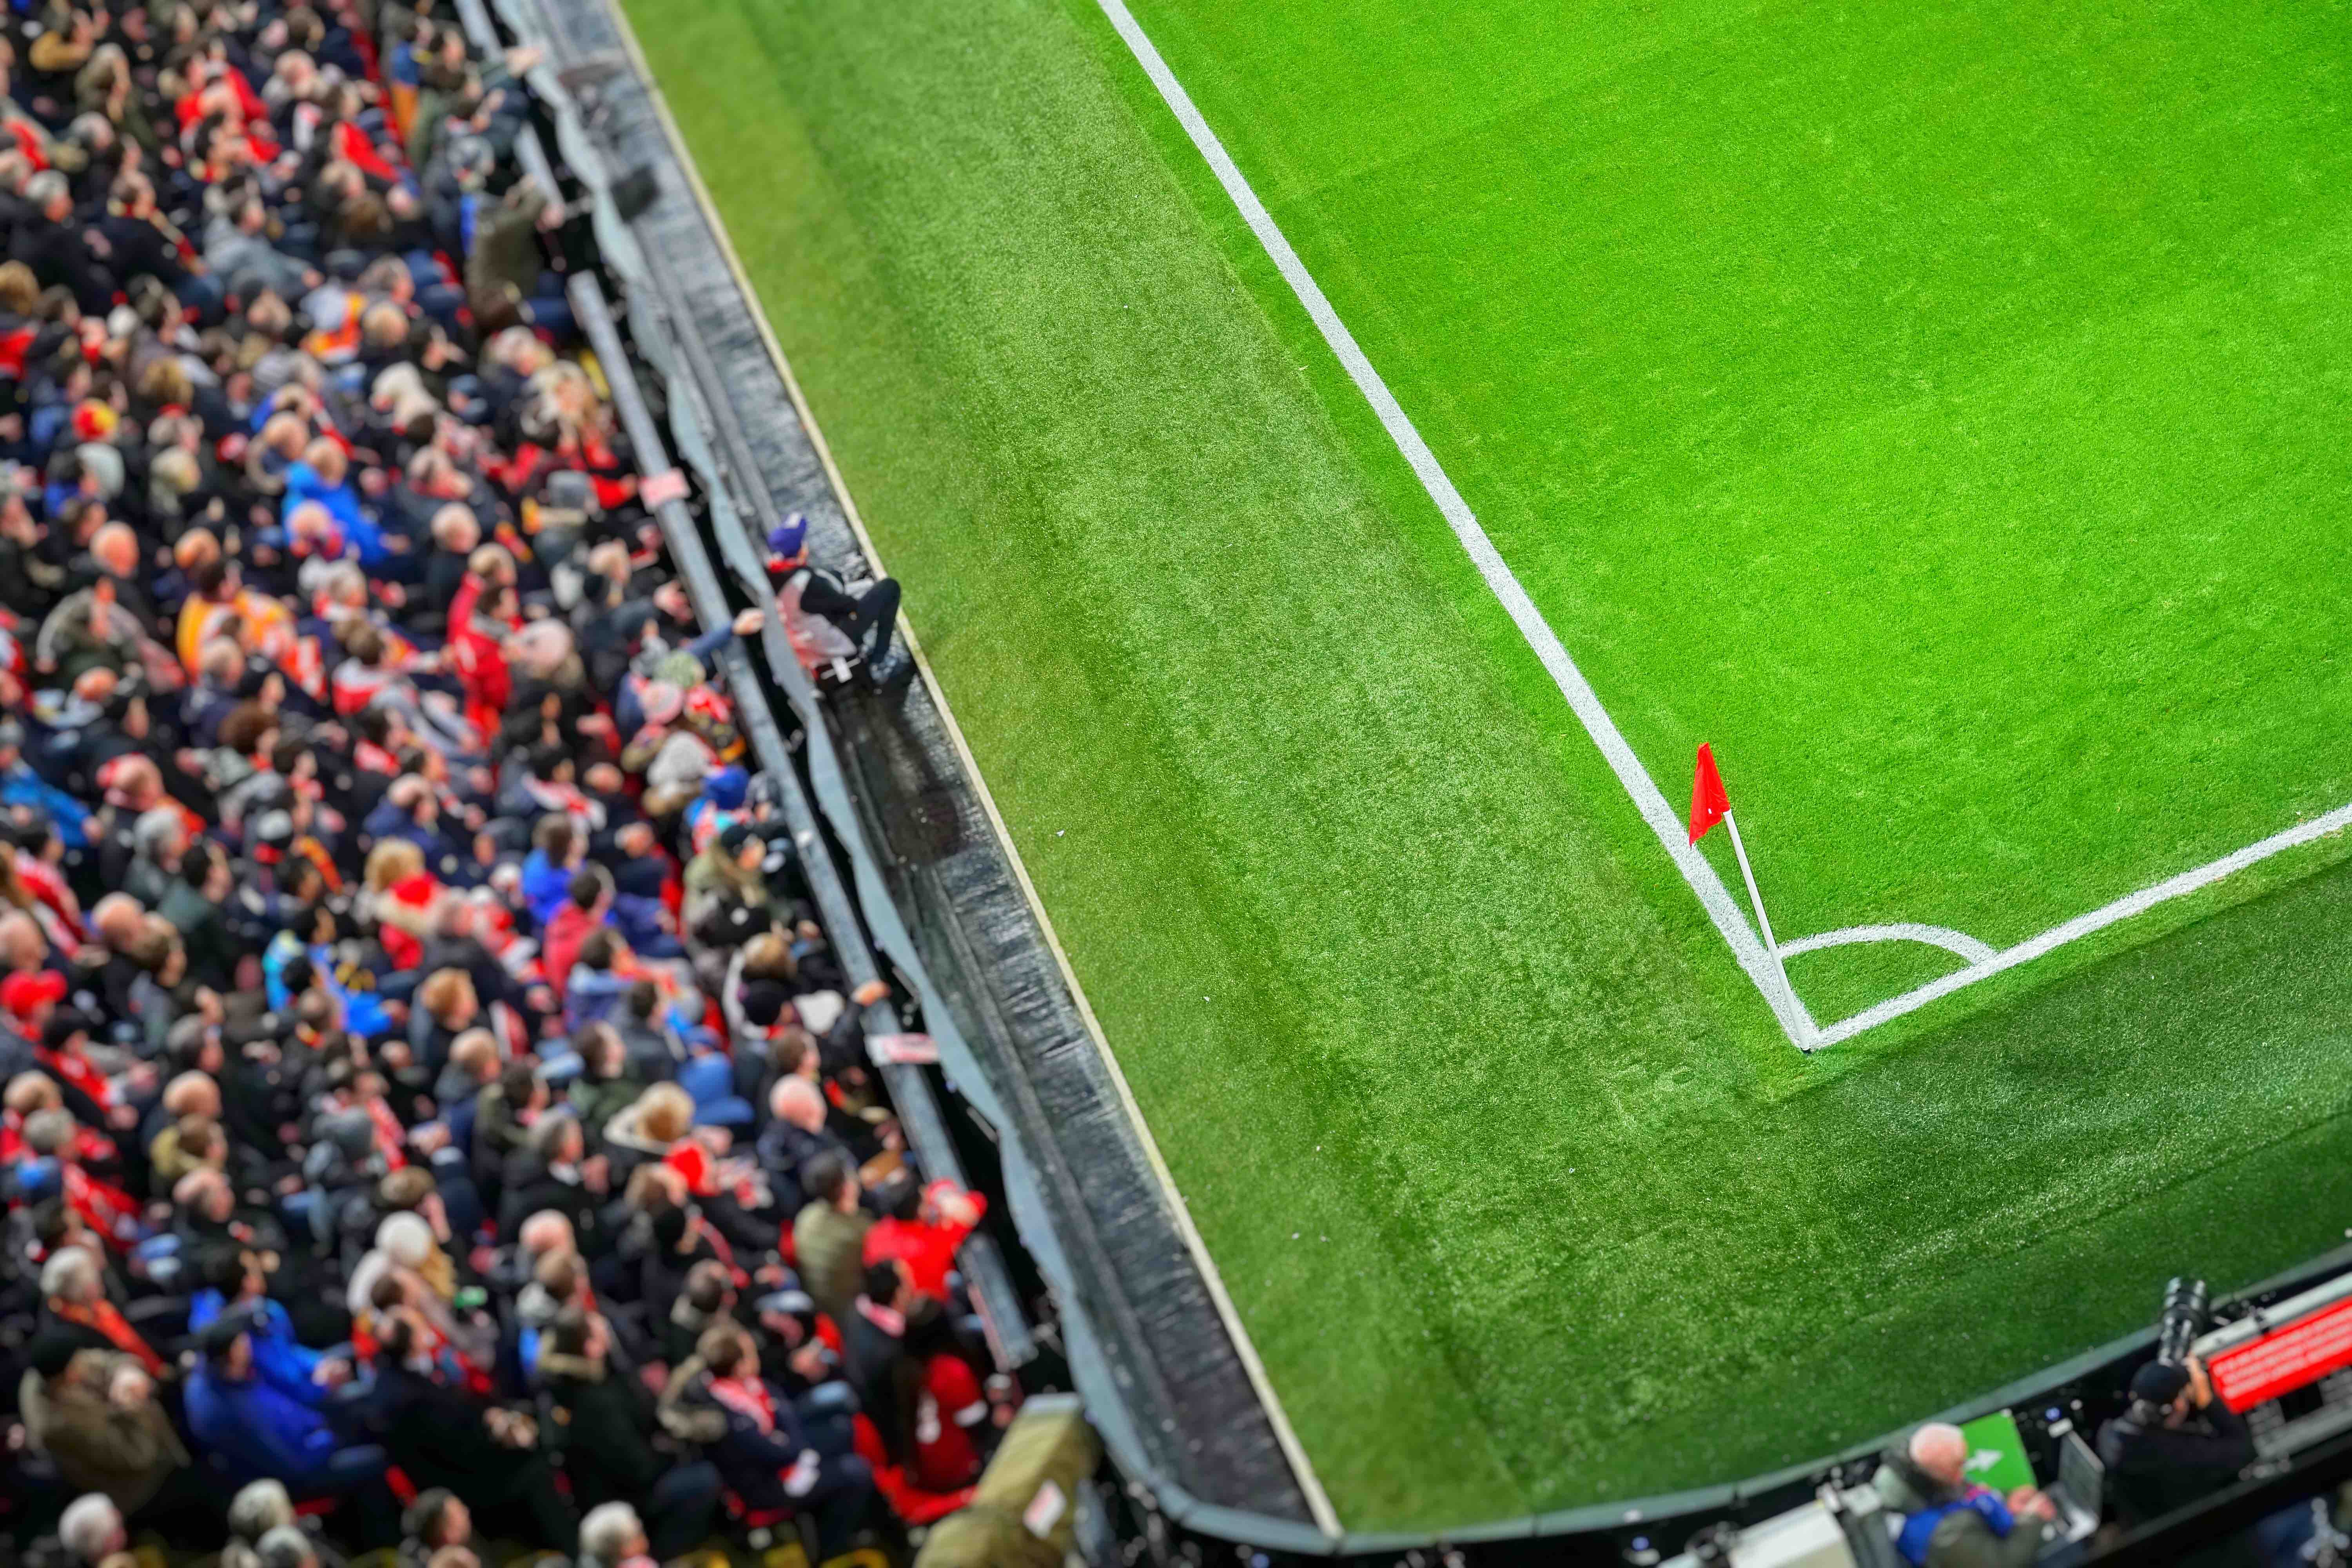 The buzz of the football players and fans on match day at Anfield, Liverpool.